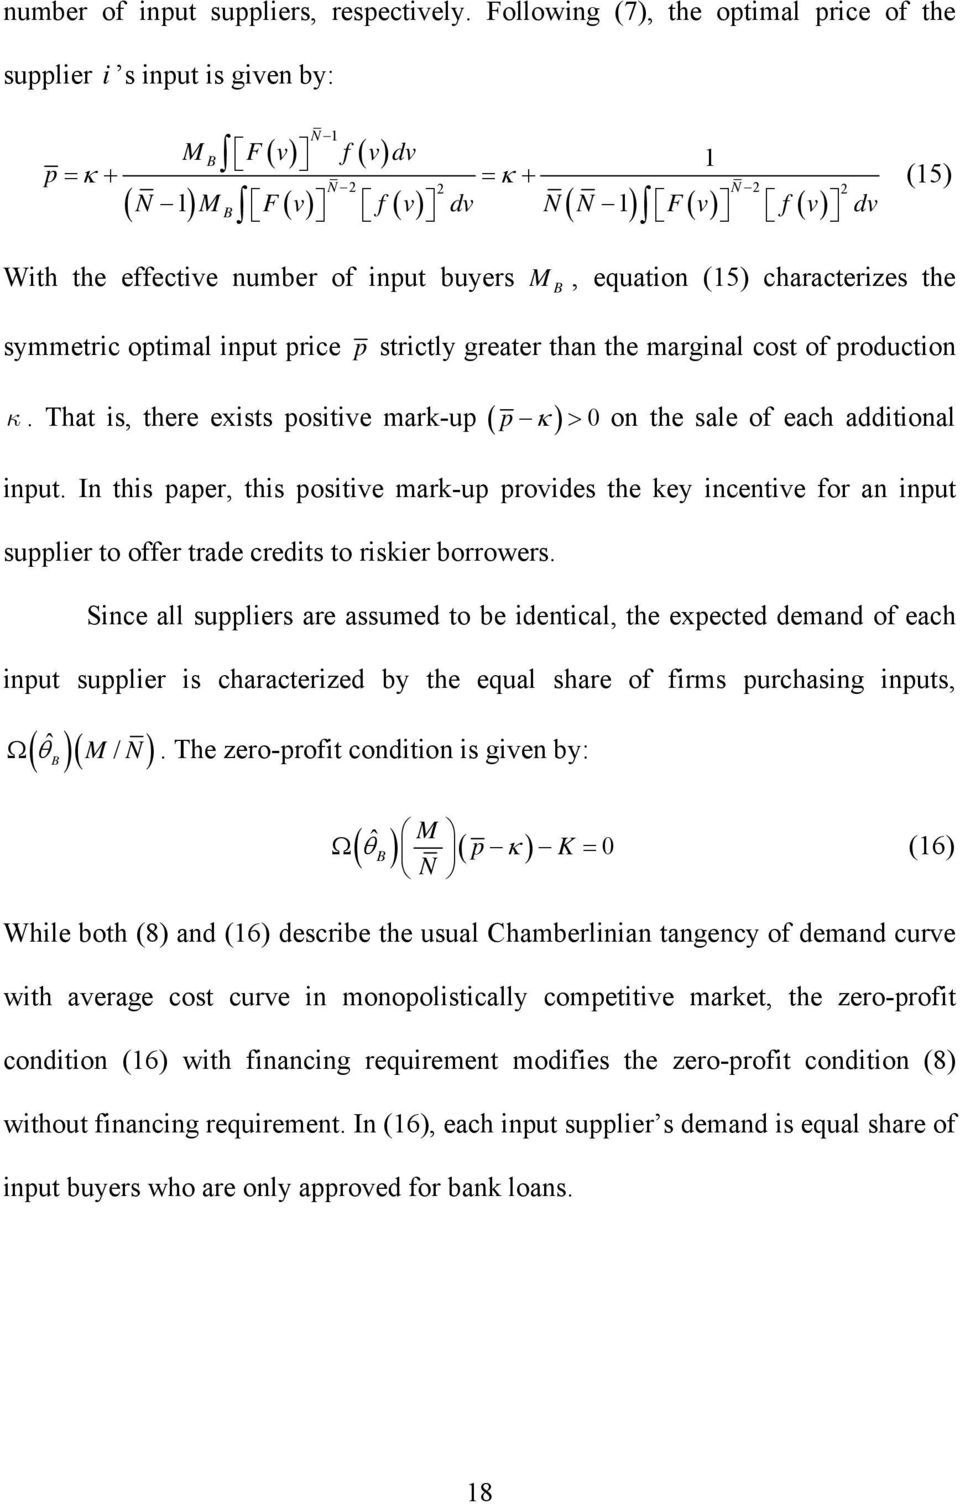 effective number of input buyers M B, equation (15) characterizes the symmetric optimal input price p strictly greater than the marginal cost of production κ.